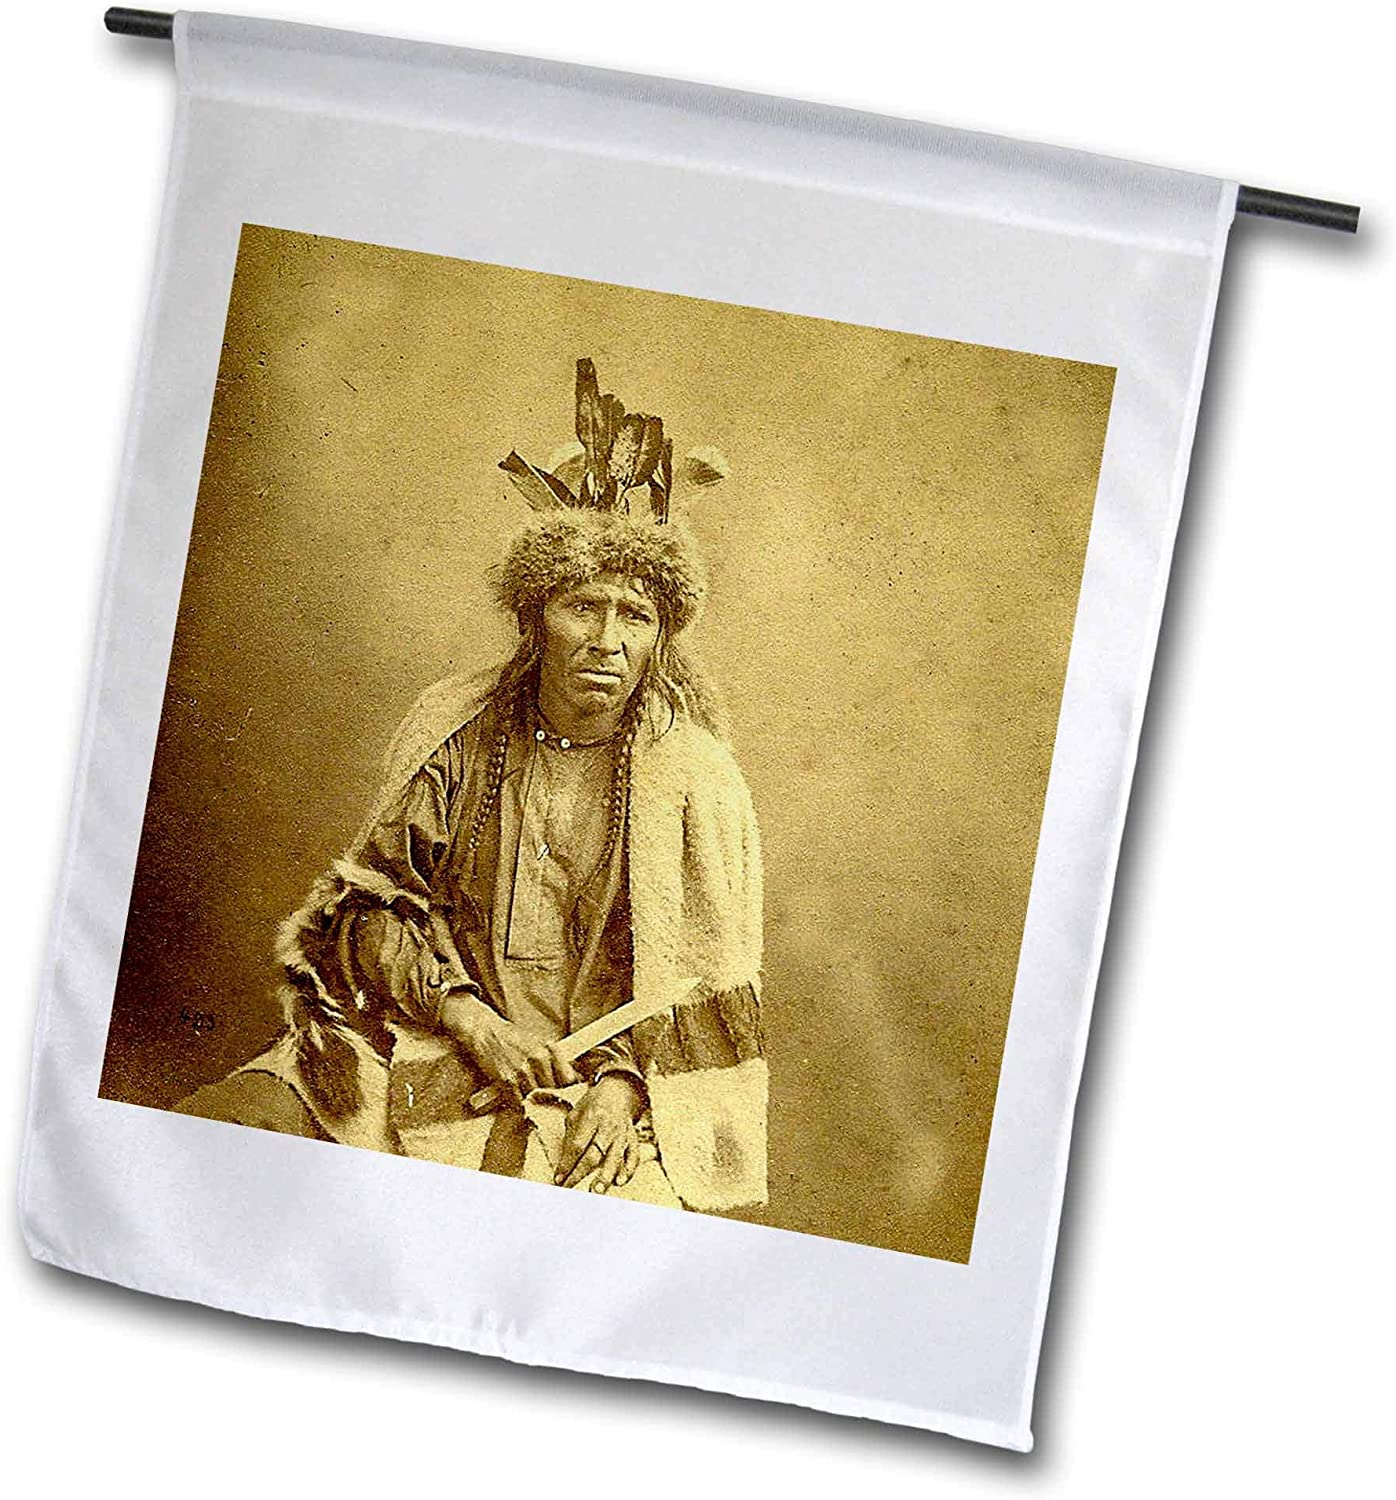 3dRose Scenes from The Past - Stereoview - Vintage Stereoview Card 1870 Native American Chippewa Chief Bitter Man - 12 x 18 inch Garden Flag (fl_300274_1)